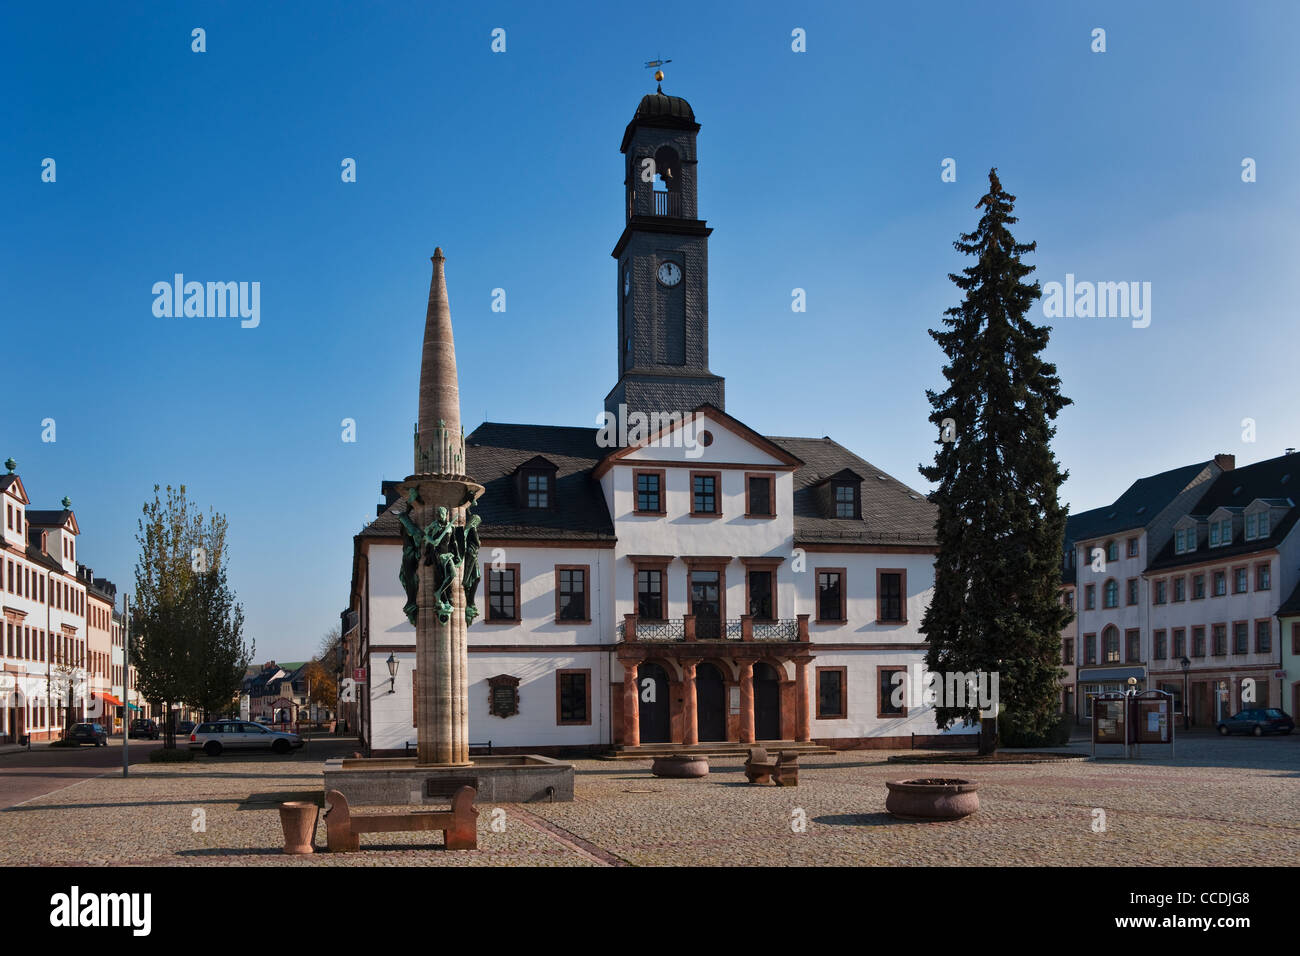 View from the marketplace to the city hall of Rochlitz build in 1828, Rochlitz, Saxony Germany Europe - Stock Image